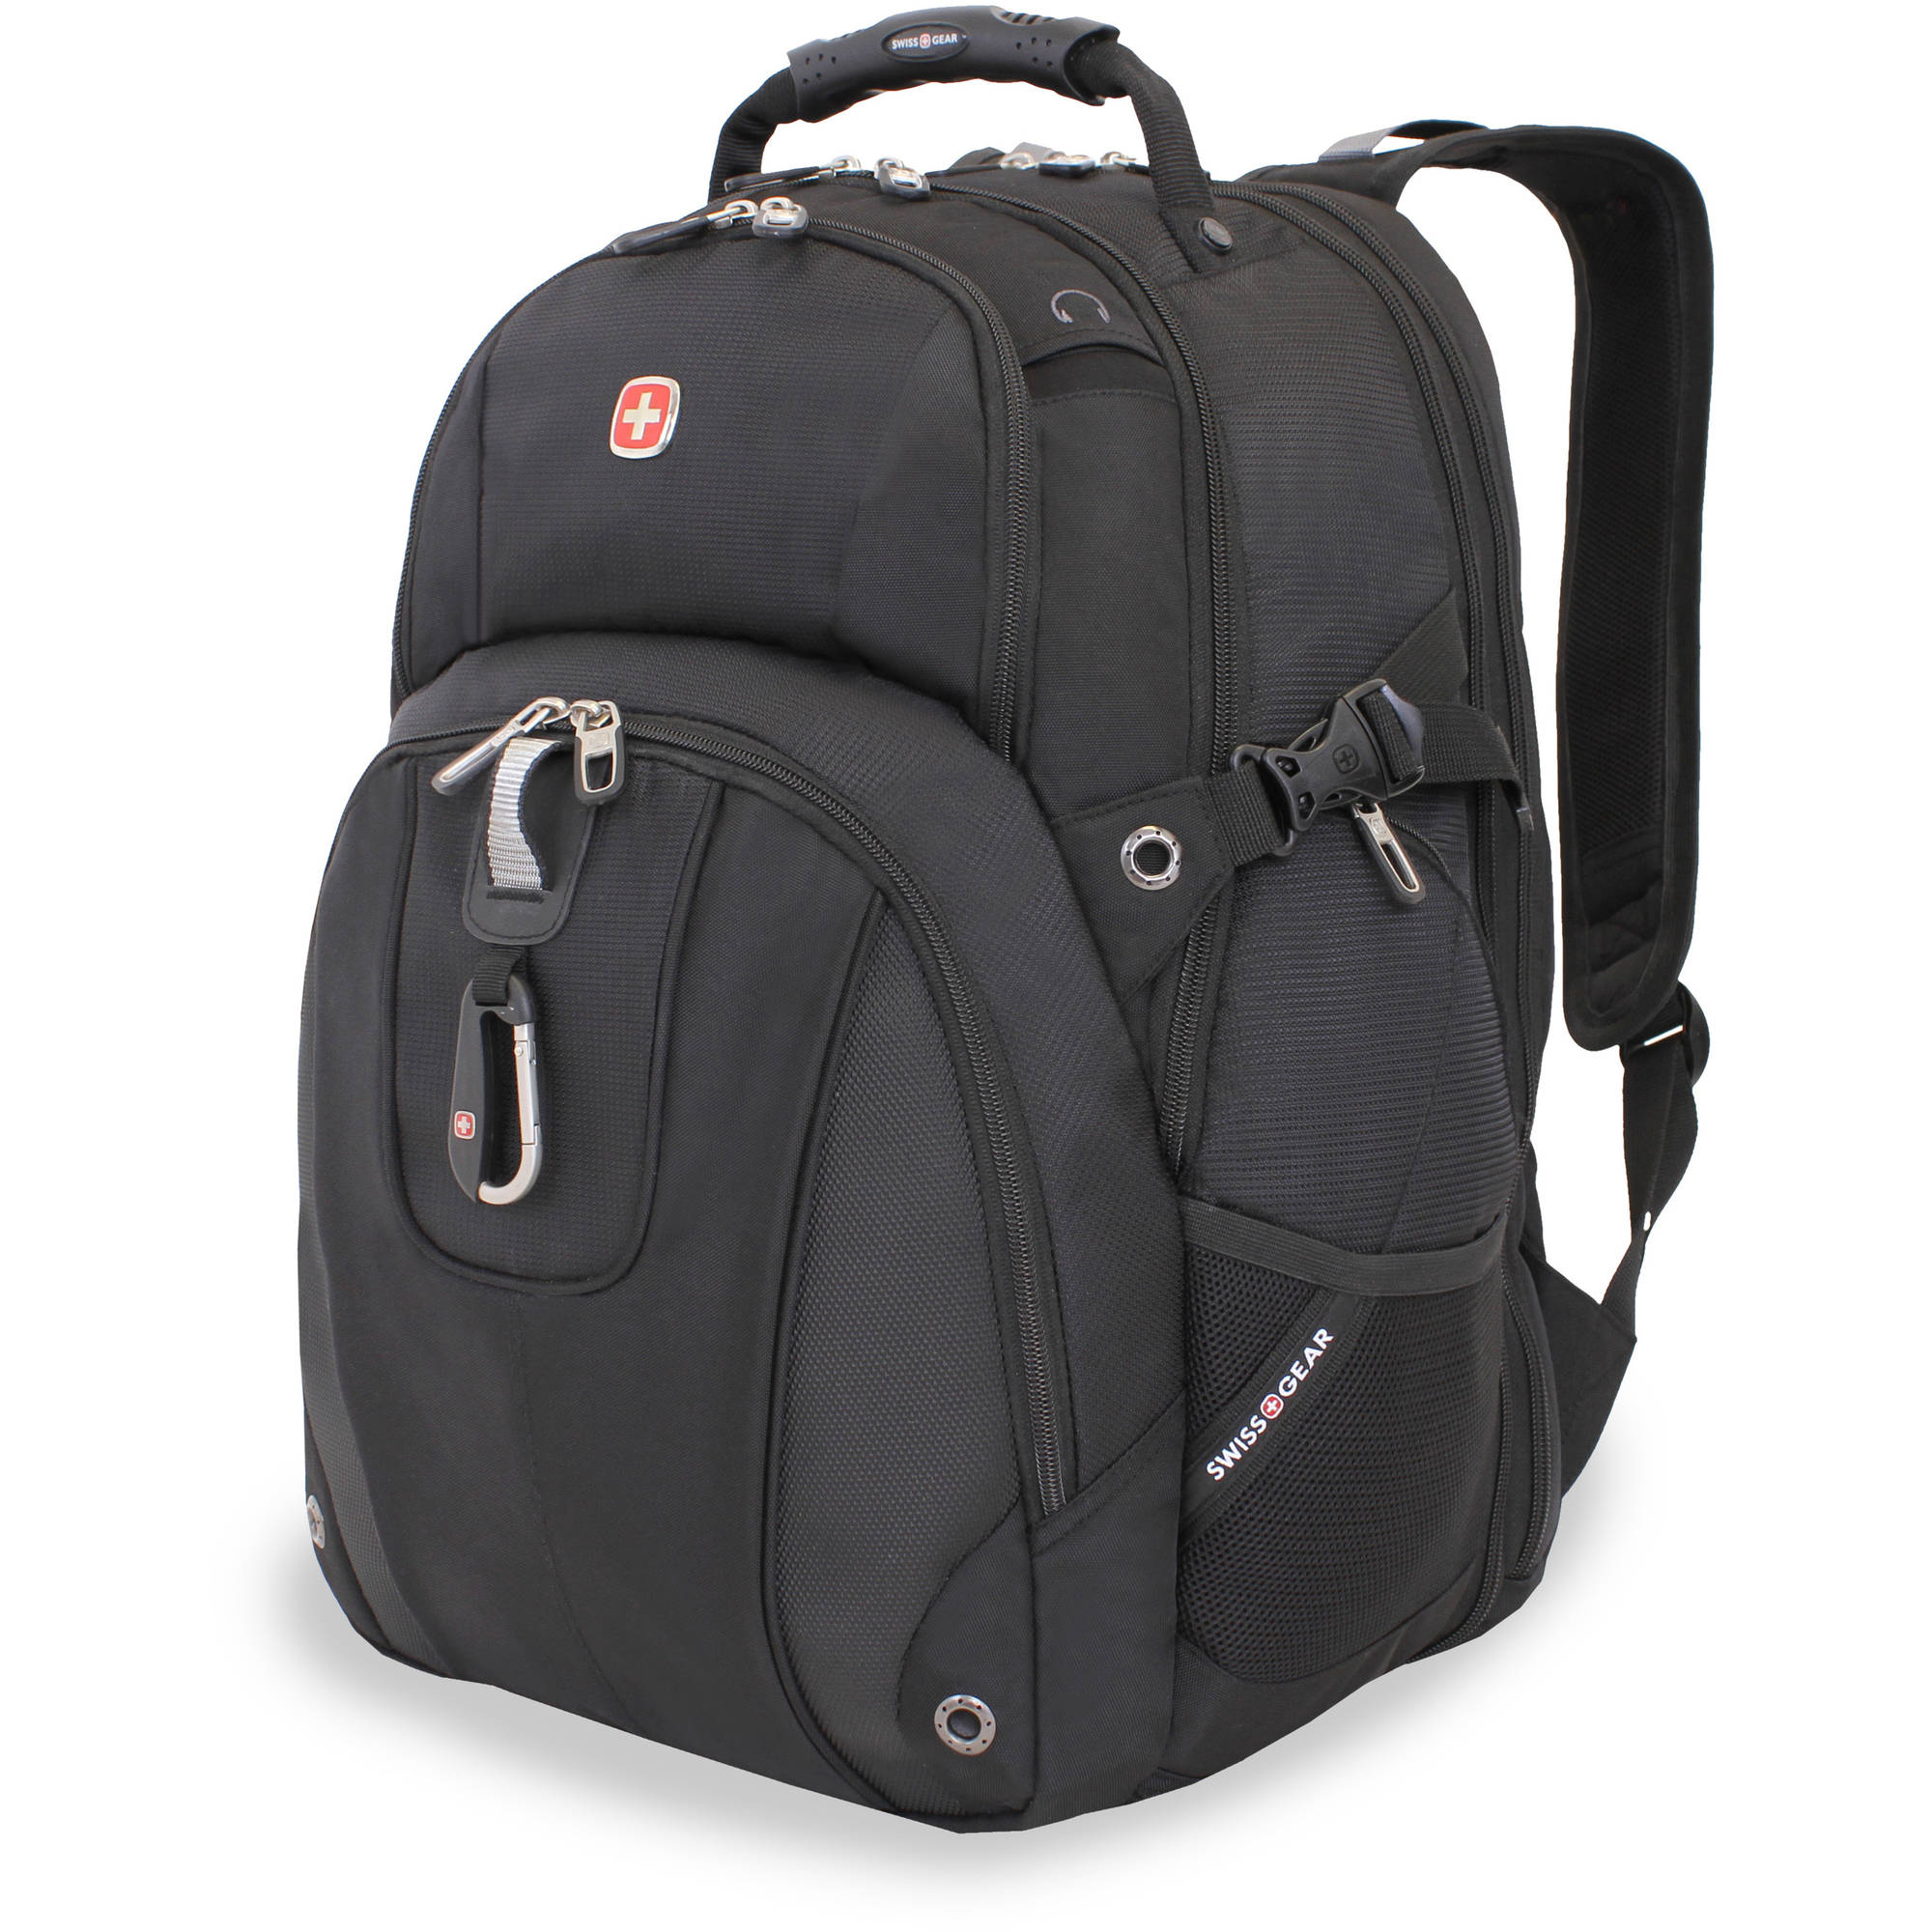 Swiss SA3239 Computer Backpack - Walmart.com